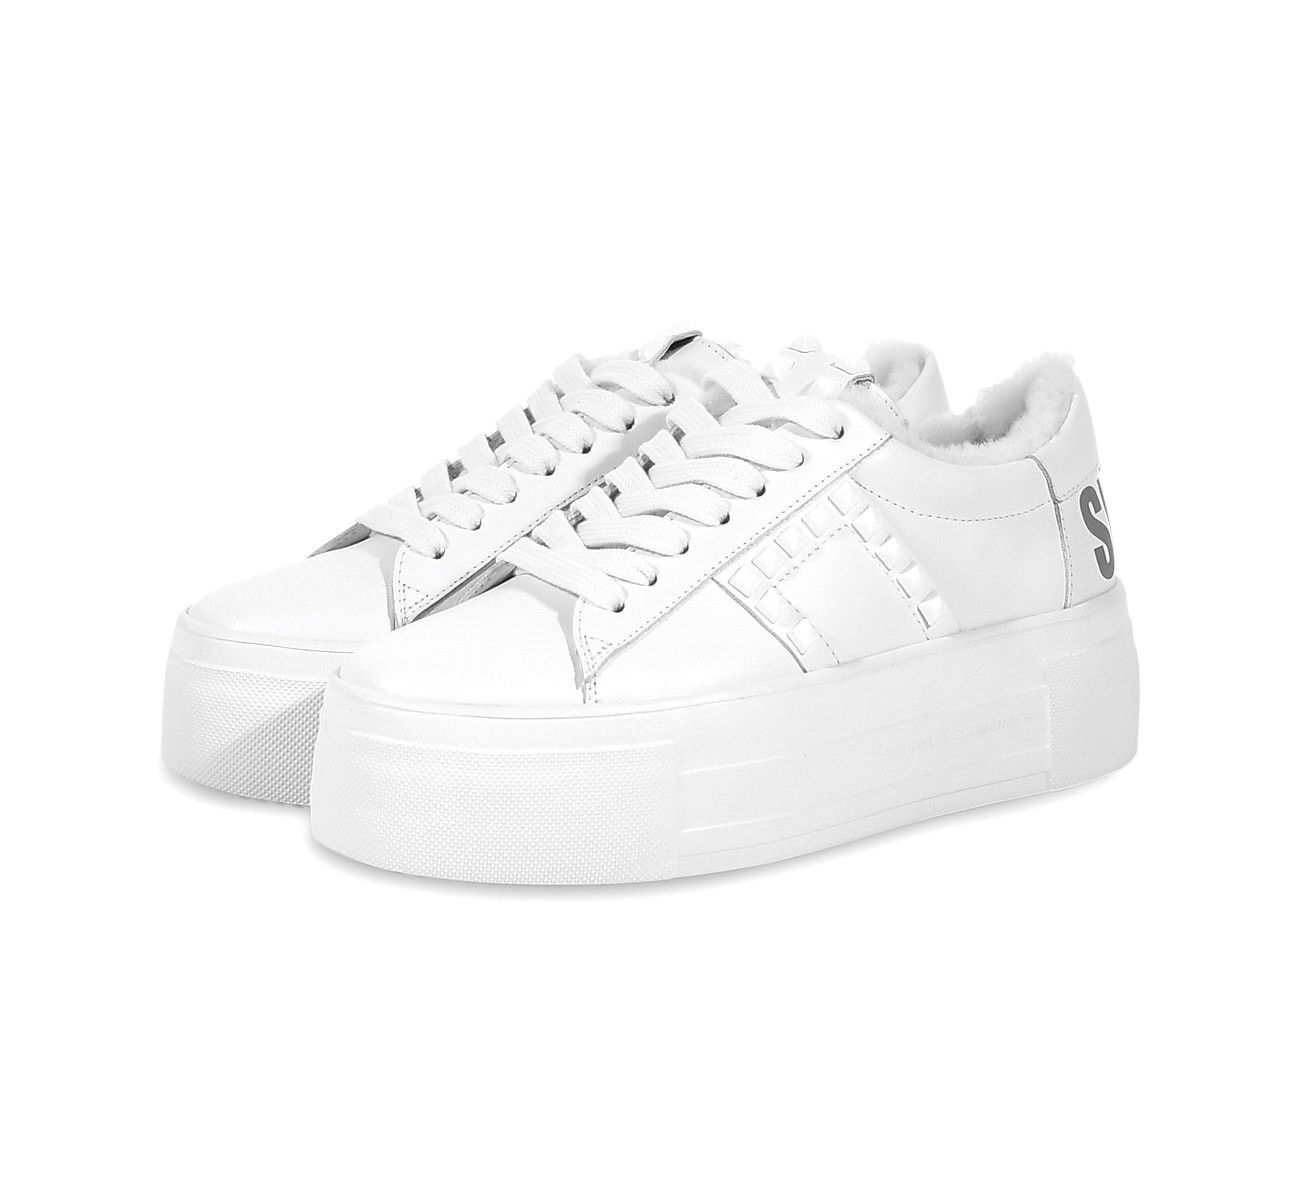 KENNEL & SCHMENGER Damen Sneaker Top 'Snow Star